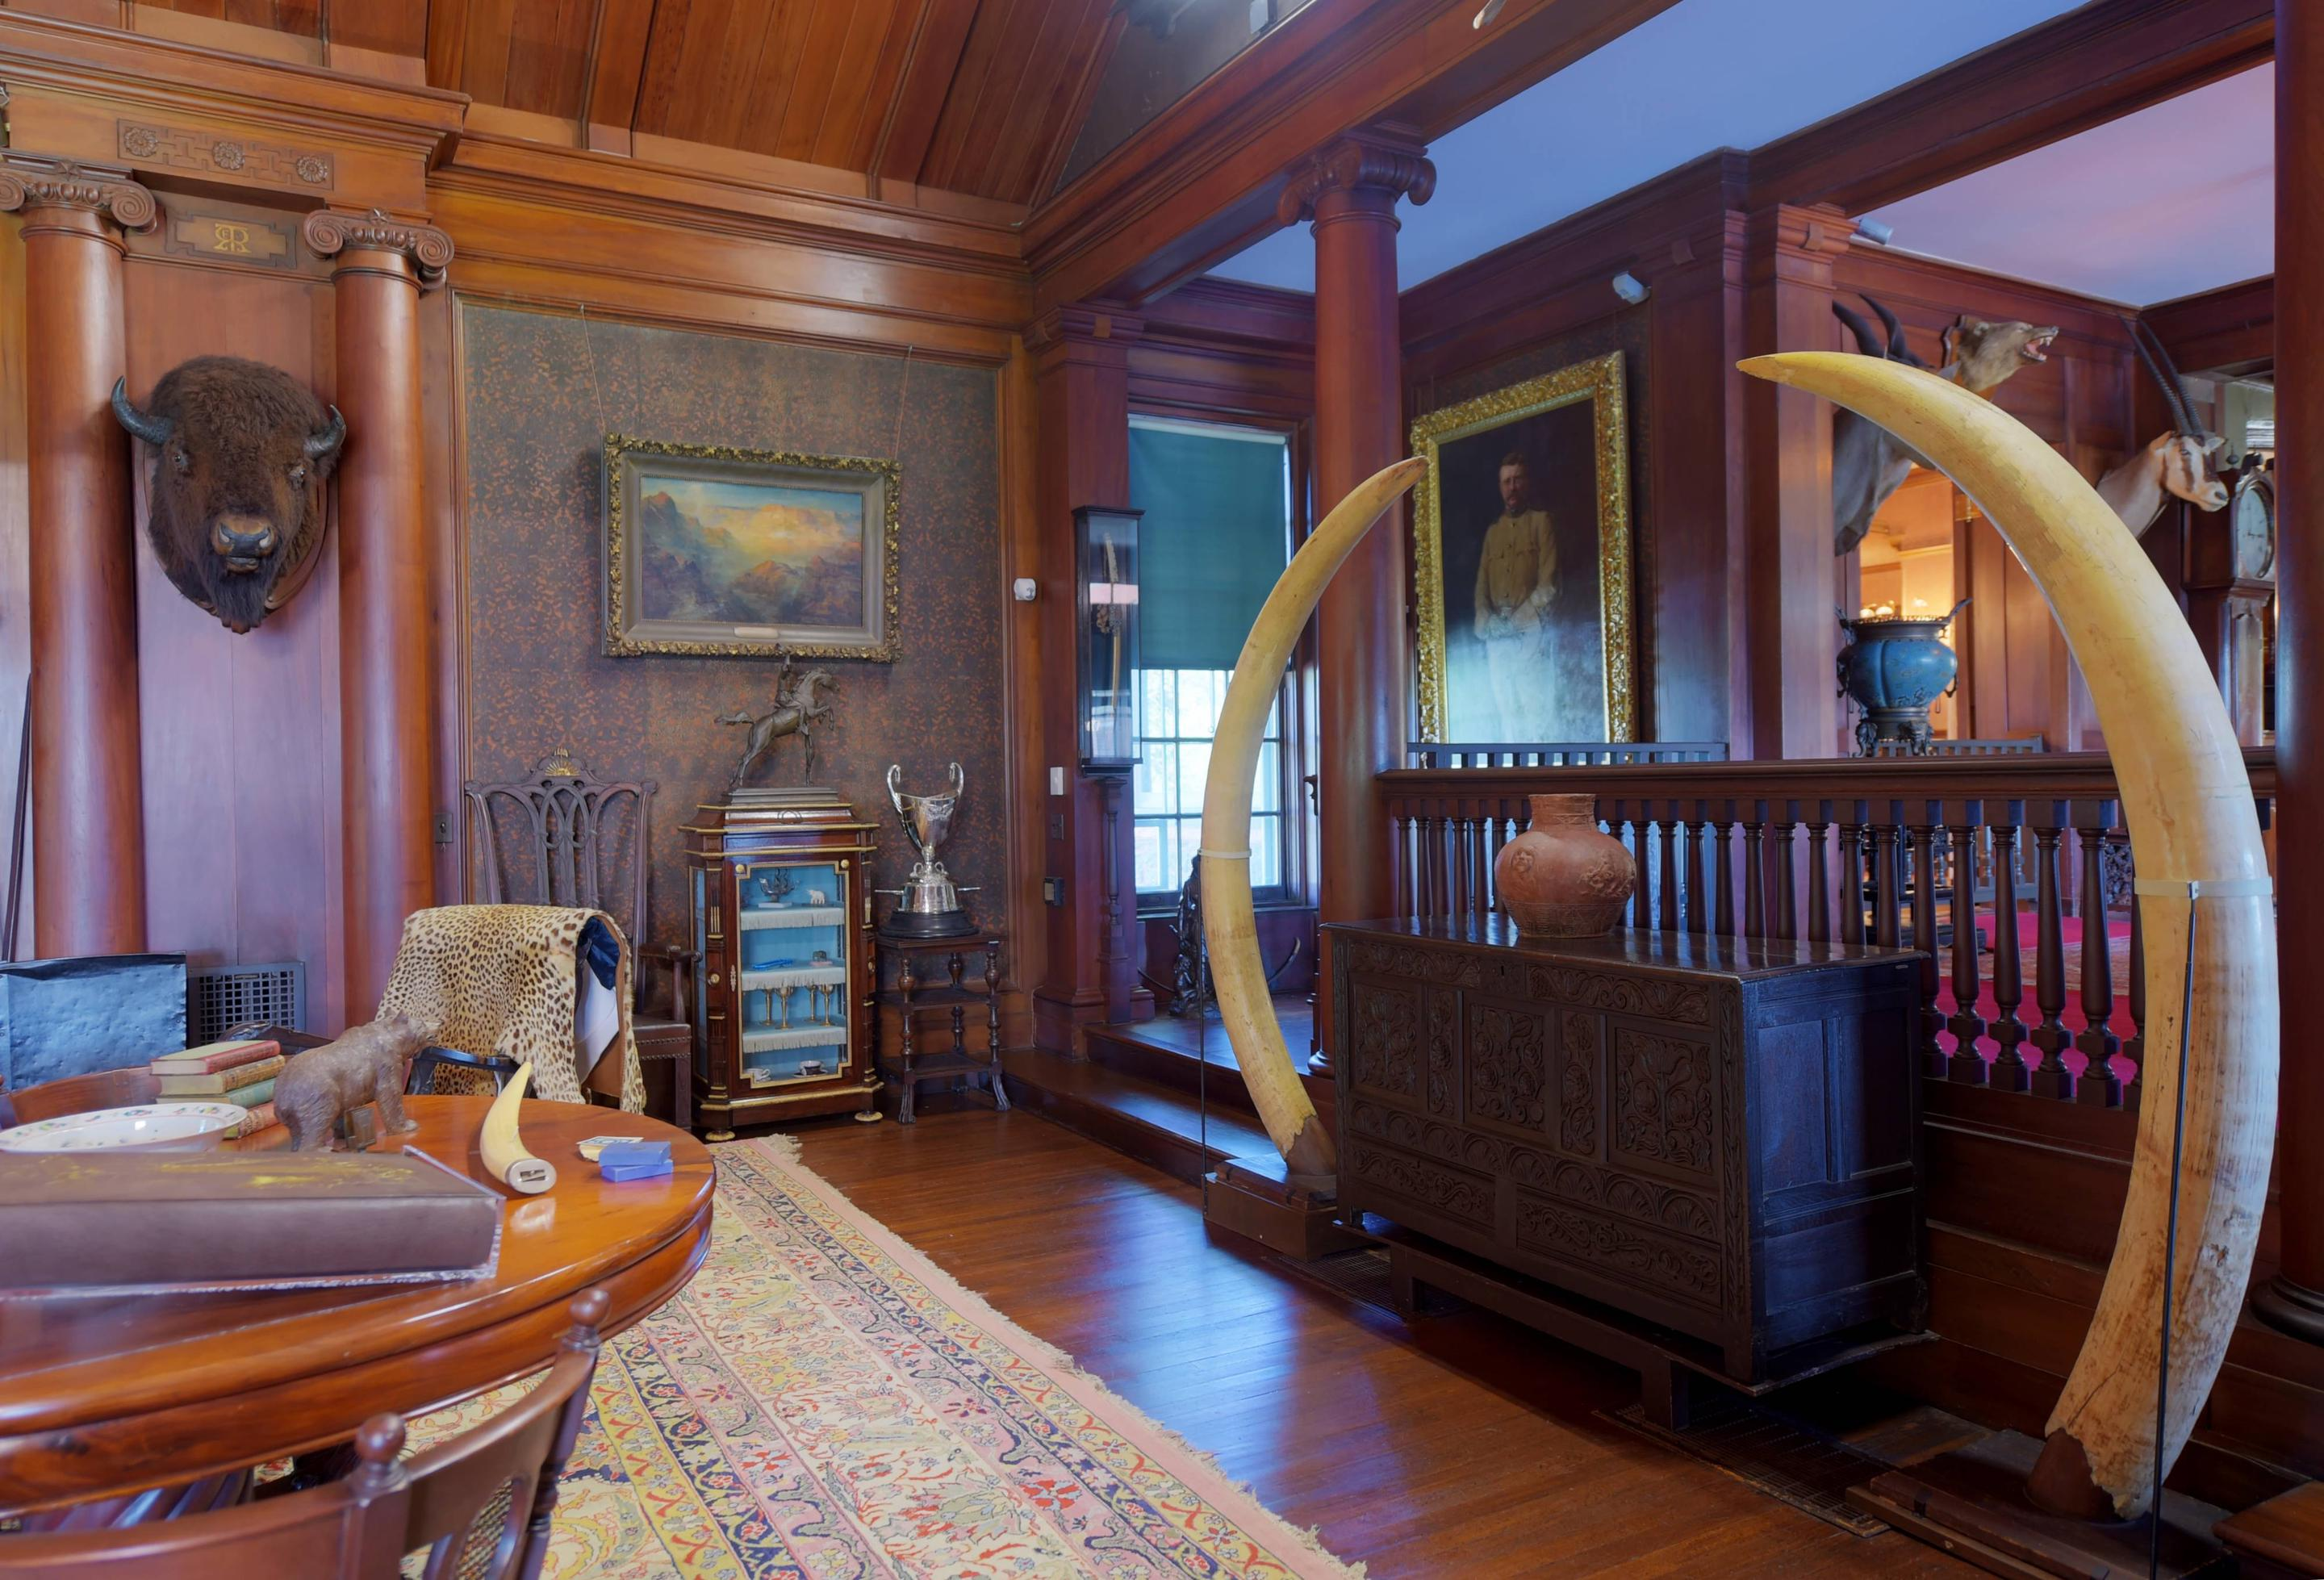 North Room of Sagamore Hill